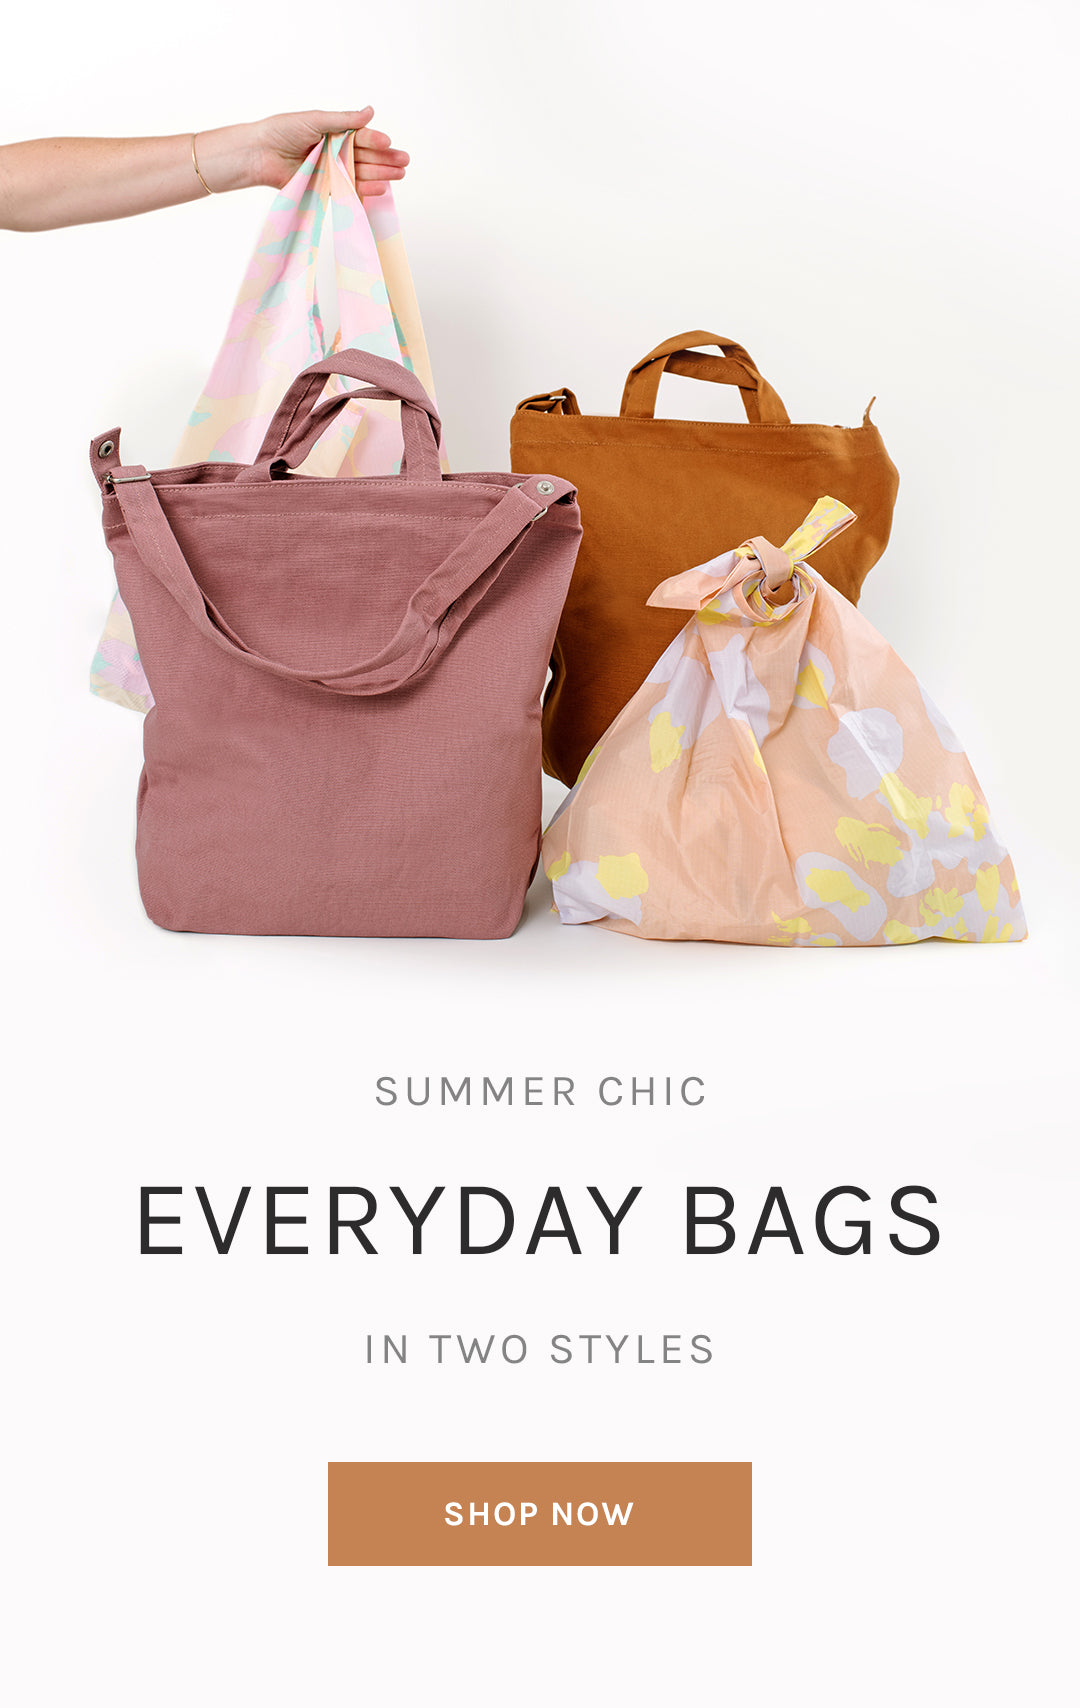 Summer Chic Everyday Bags in Two Styles